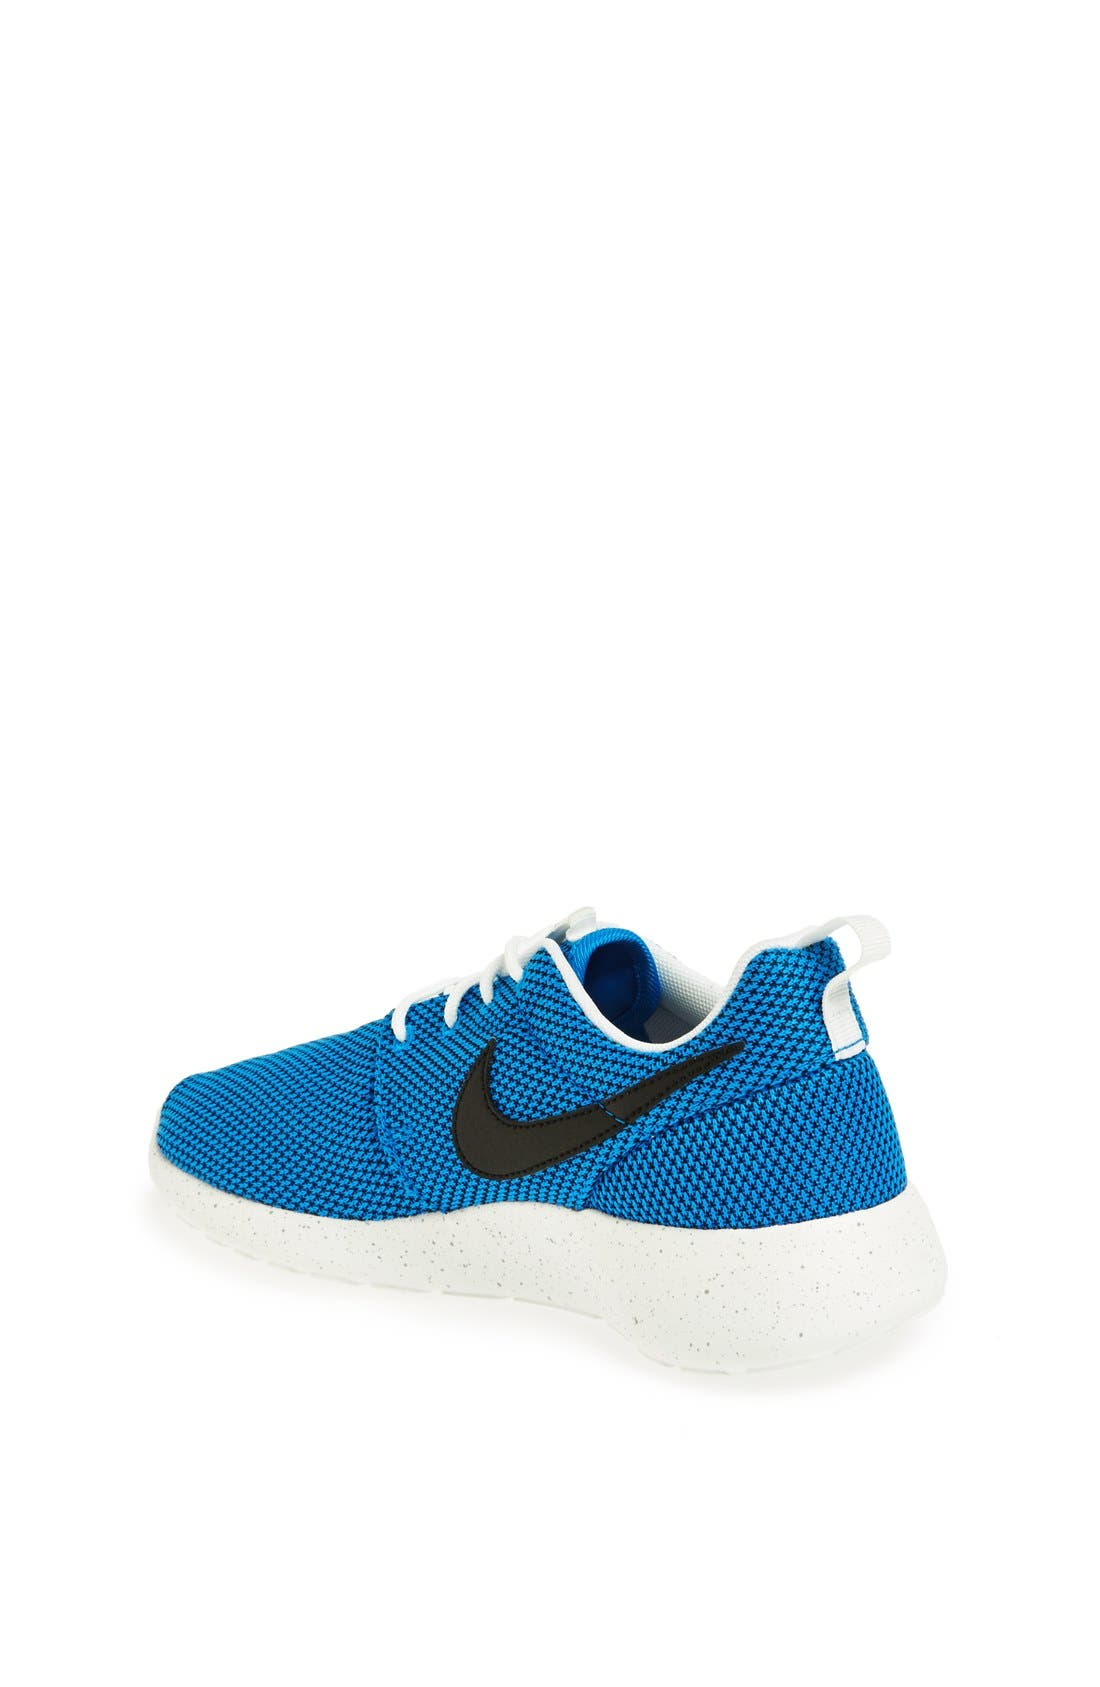 'Roshe Run' Sneaker,                             Alternate thumbnail 129, color,